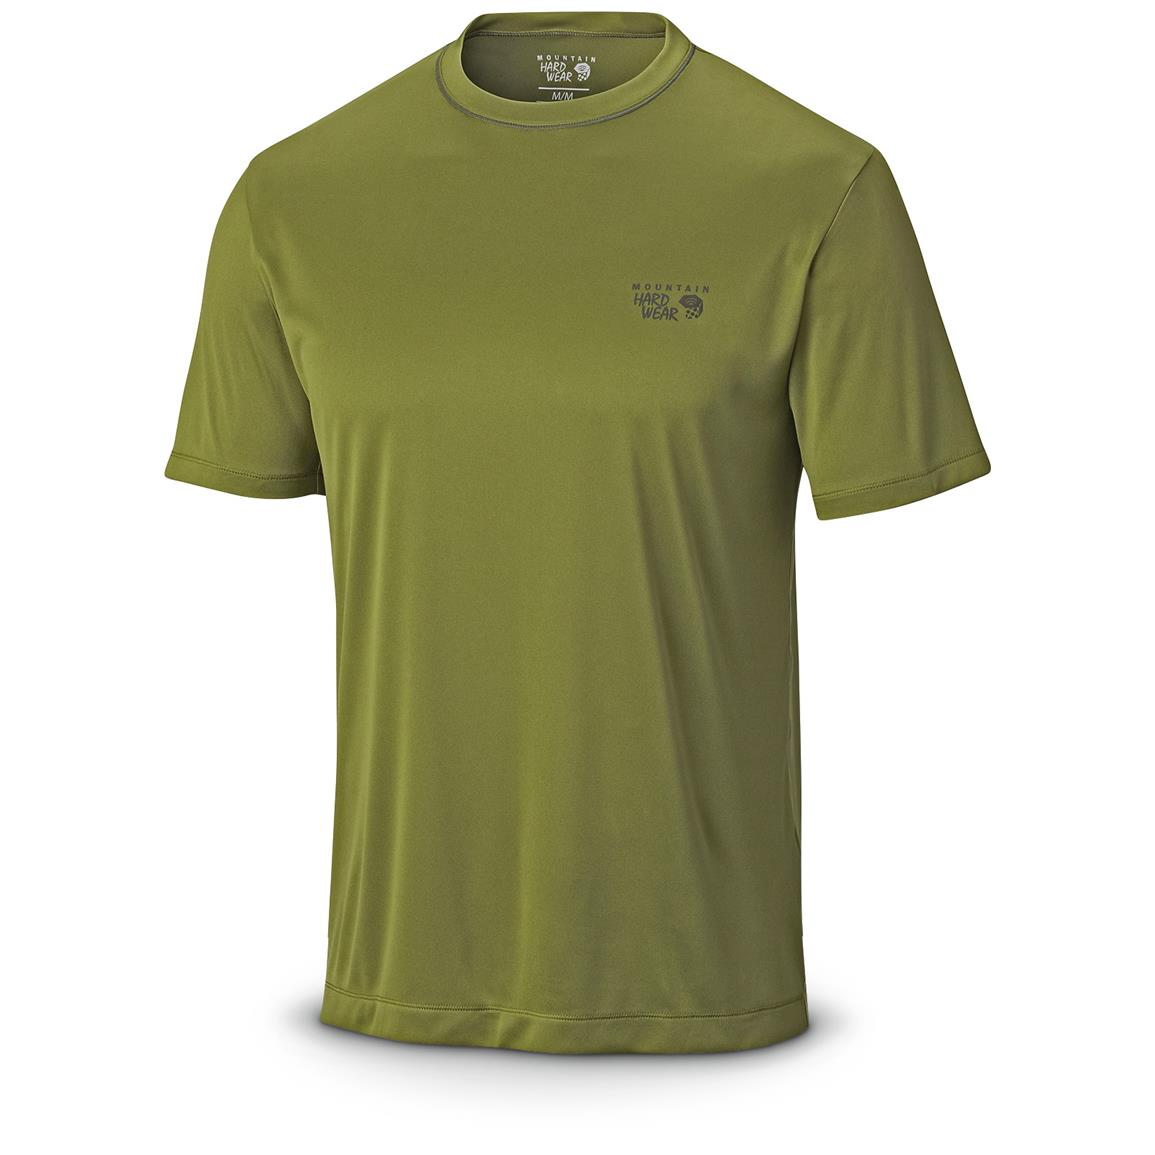 Mountain Hardwear Men's Wicked T-Shirt, Short Sleeved, Amphibian Front